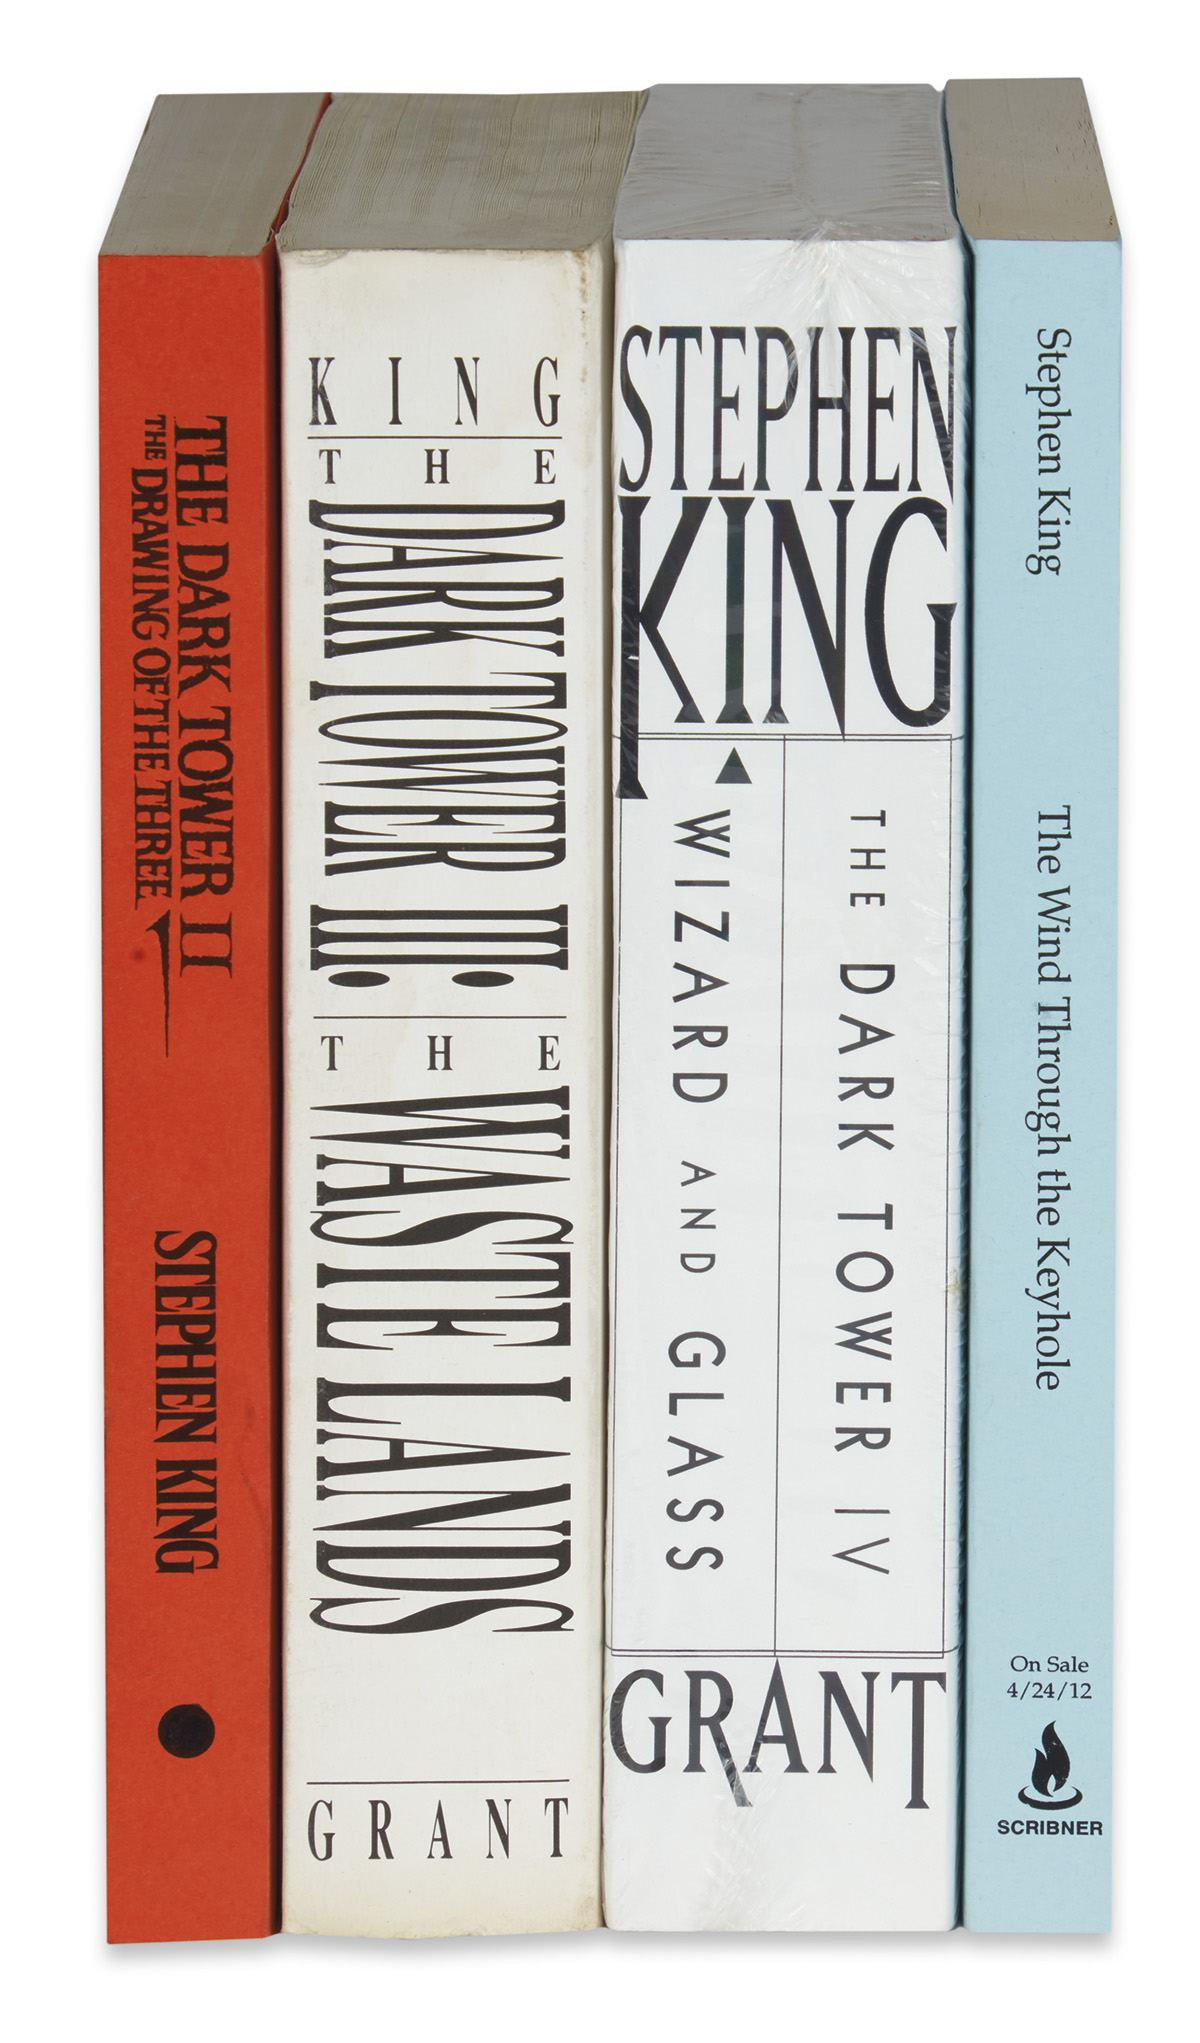 KING-STEPHEN-Group-of-4-Advance-Copies-from-the-Dark-Tower-S